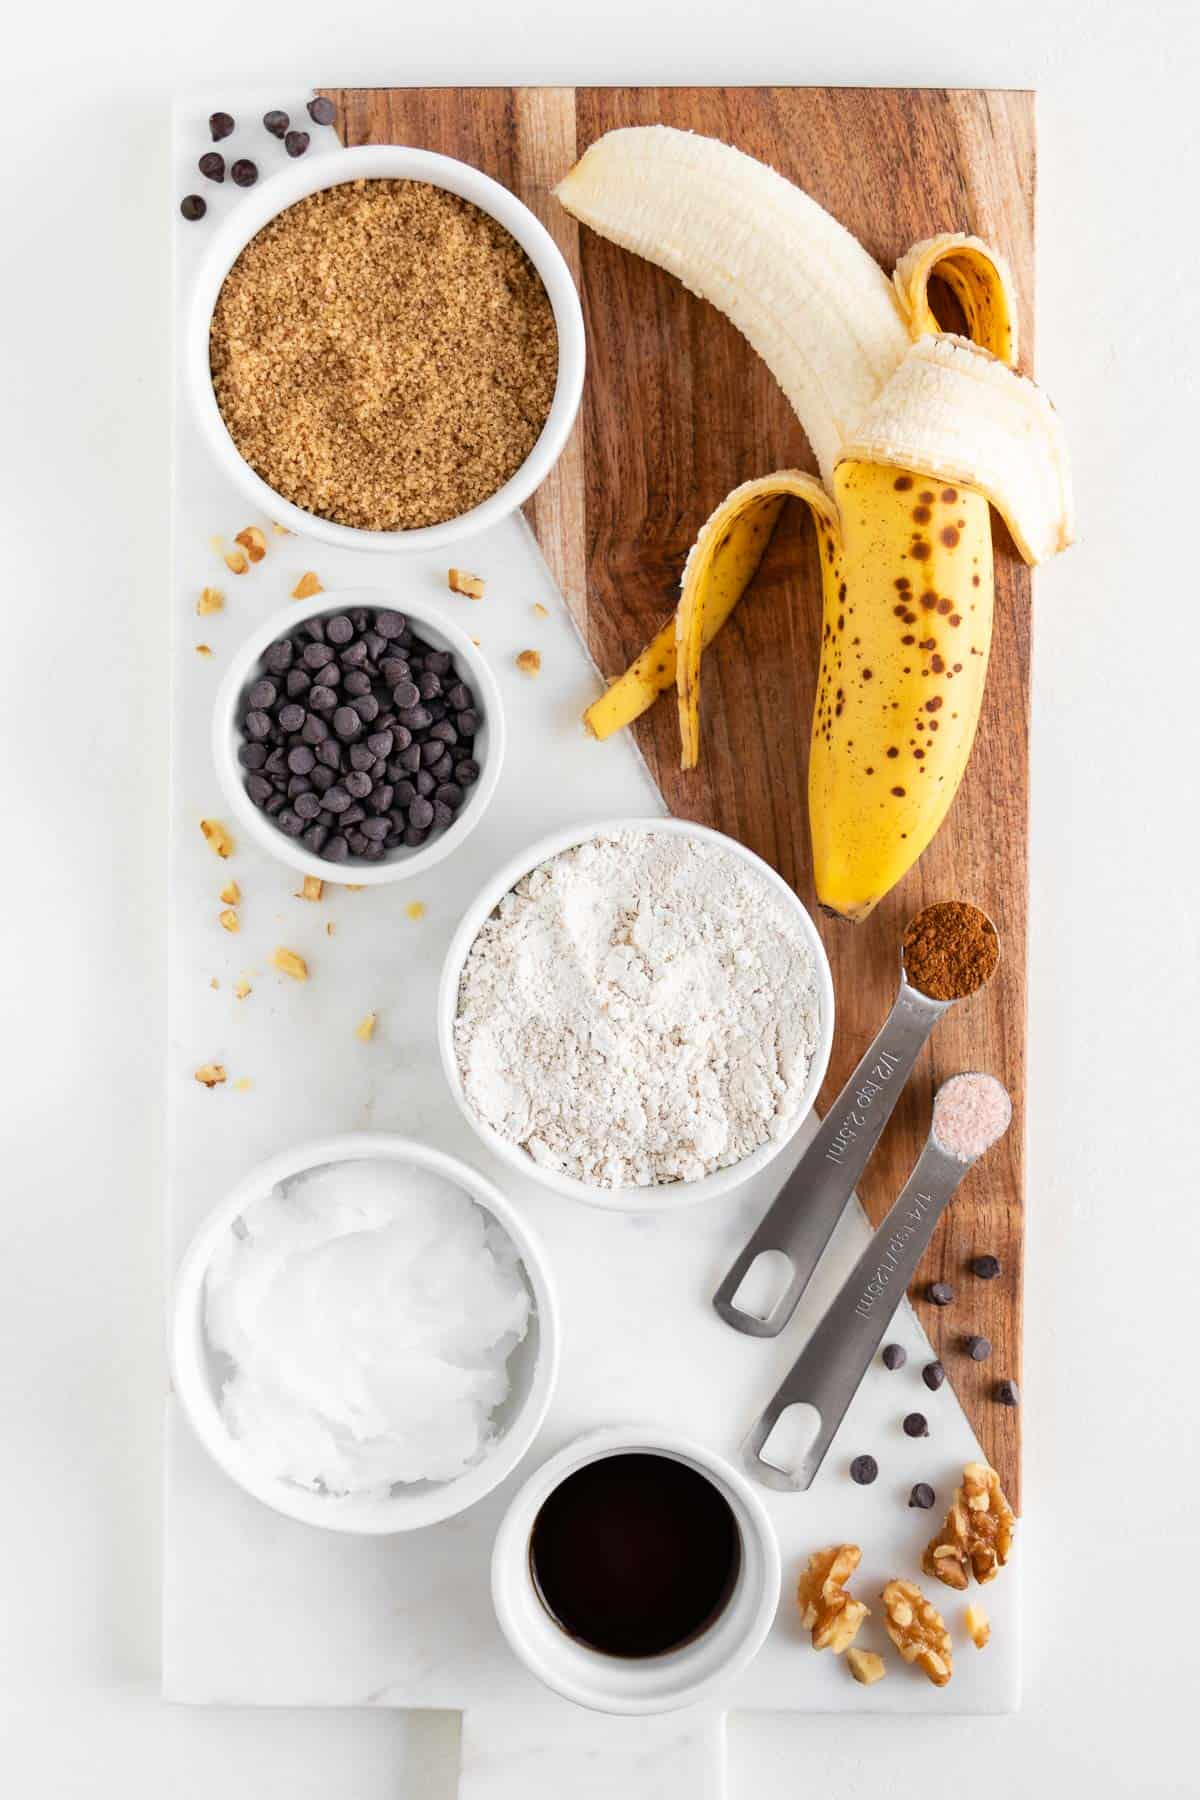 a marble and wooden board topped with bowls of brown sugar, chocolate chips, oat flour, coconut oil, vanilla extract, and a peeled banana